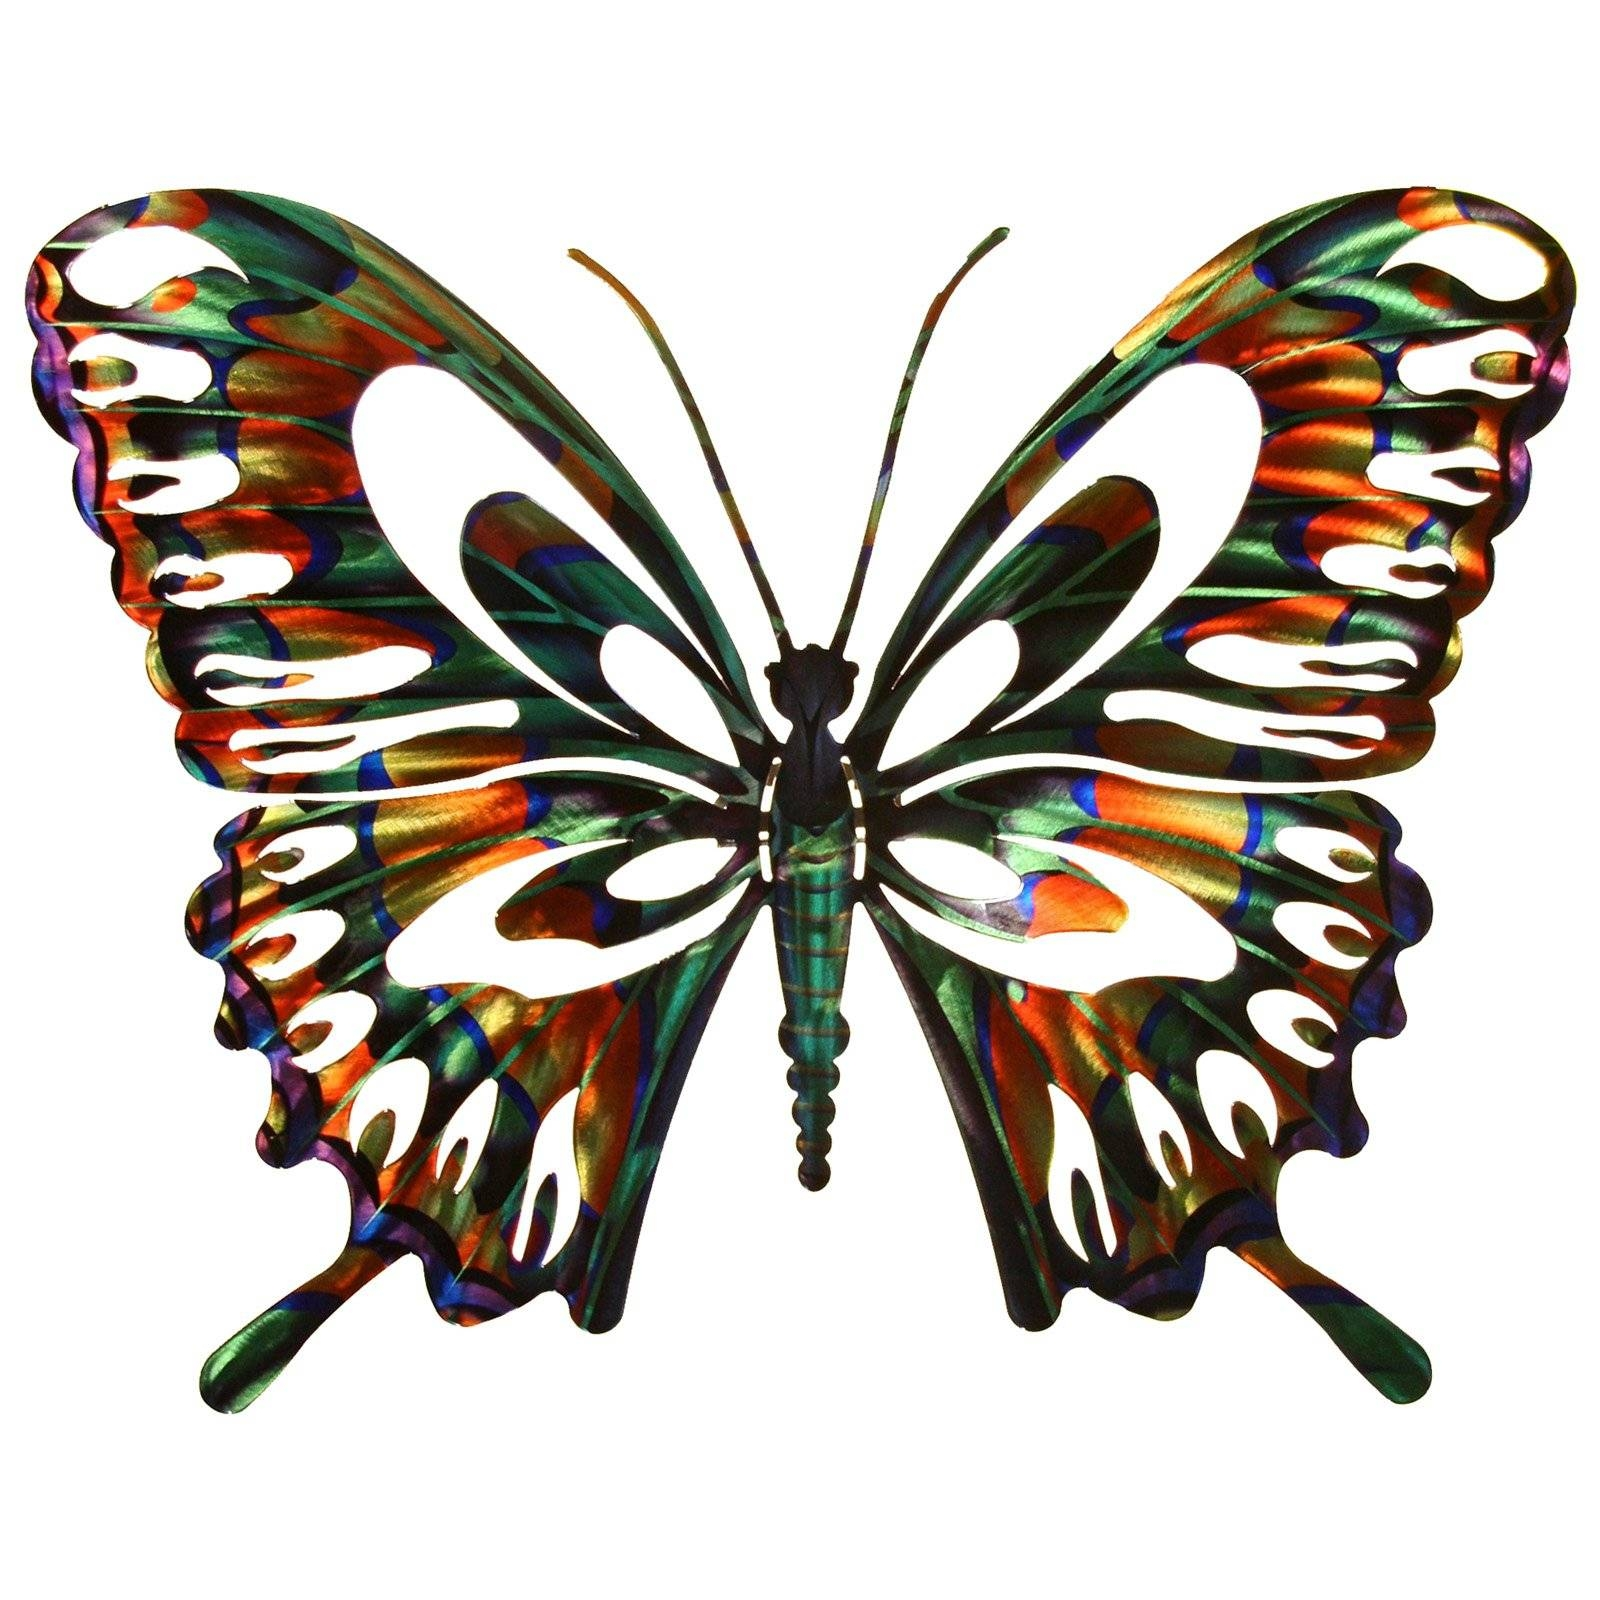 3D Butterfly Metal Outdoor Wall Art | Hayneedle In Latest 3D Butterfly Wall Art (View 3 of 20)